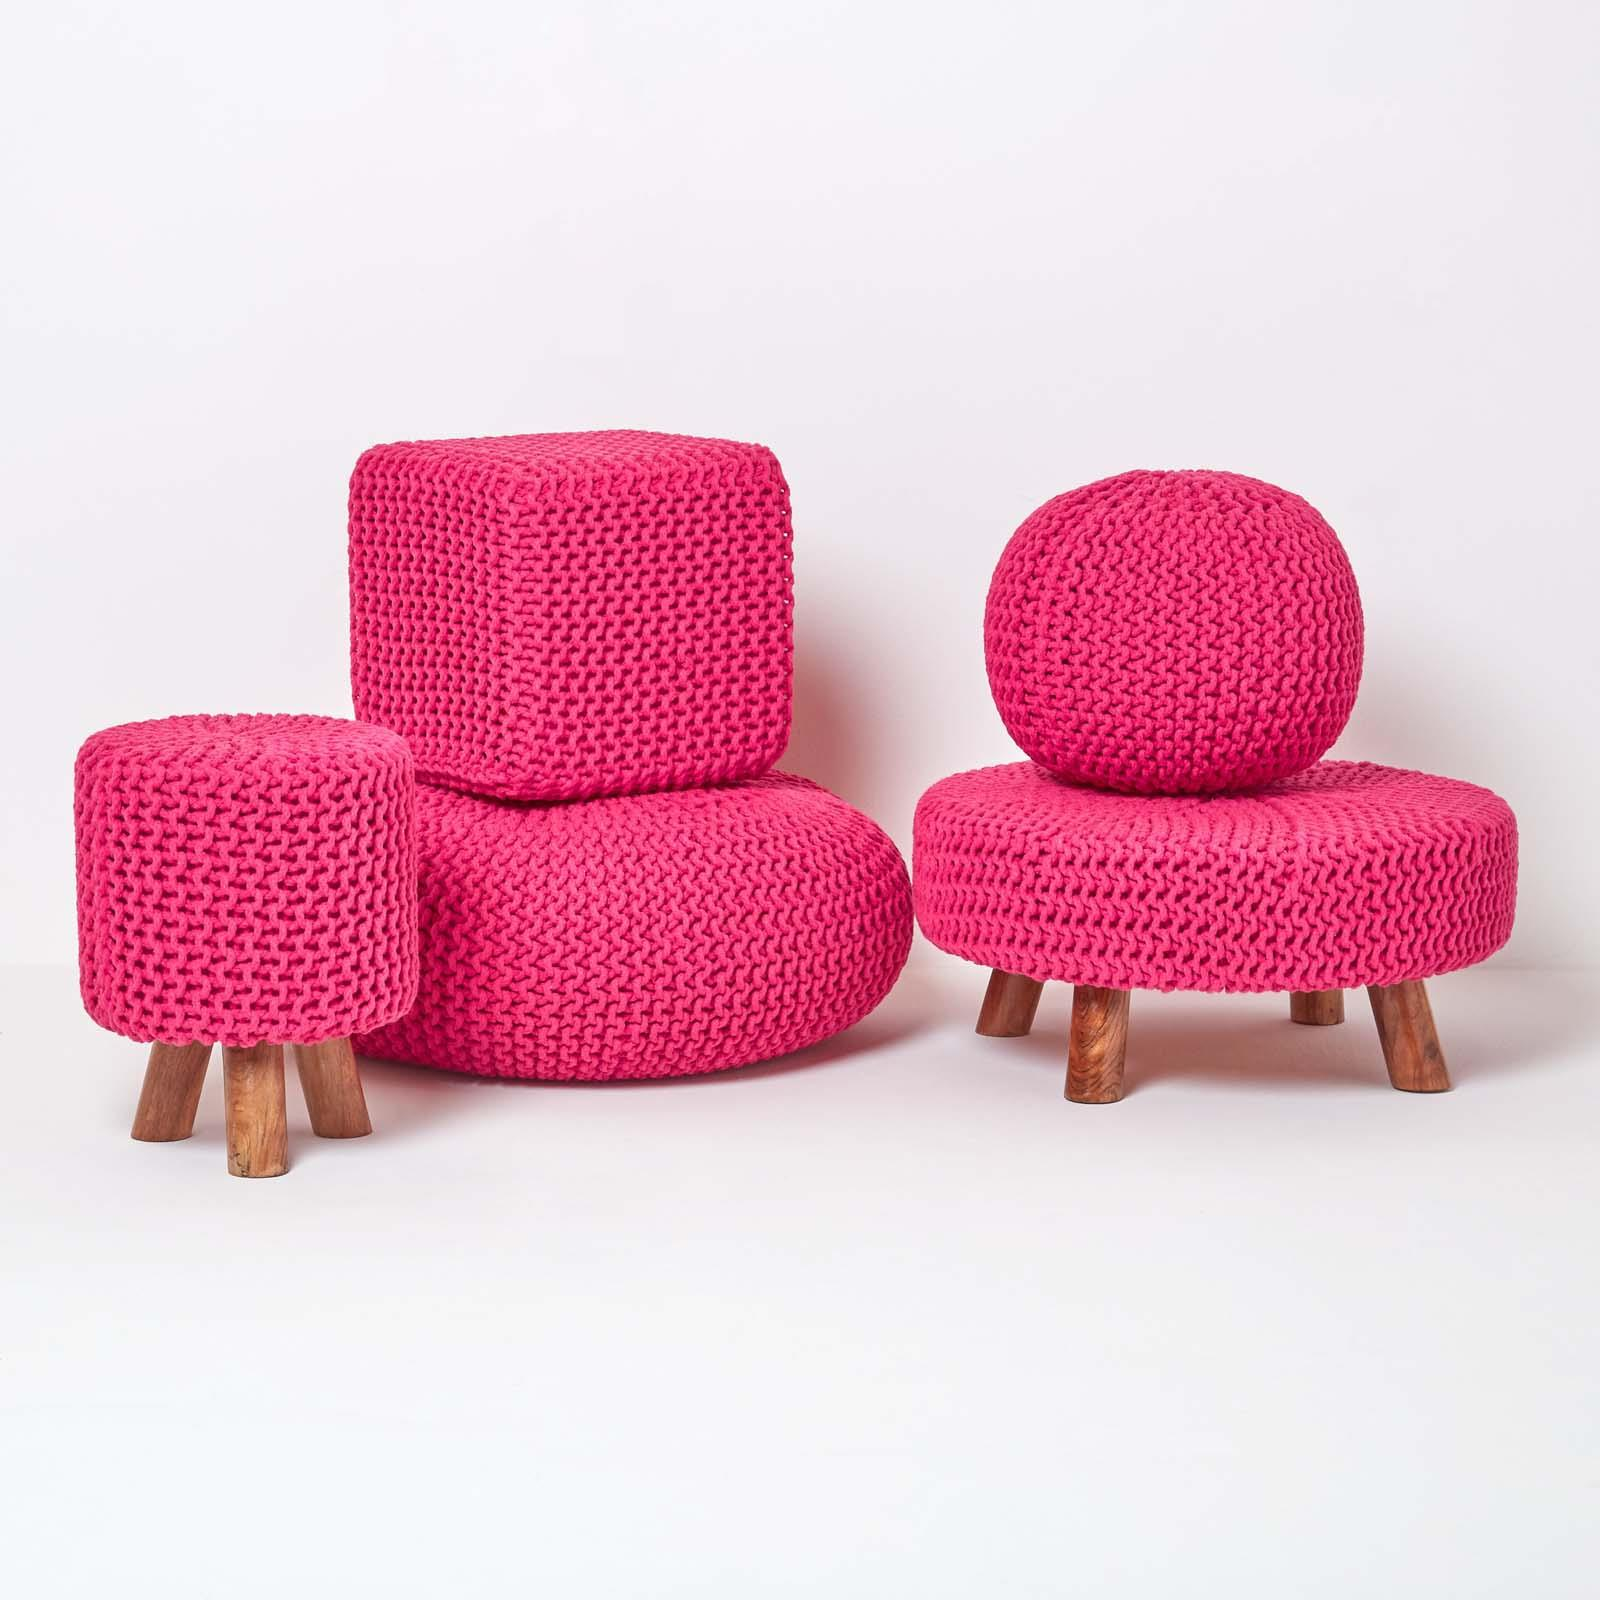 Hand-Knitted-100-Cotton-Pouffes-Round-Sphere-Or-Cube-Square-Chunky-Footstools thumbnail 66